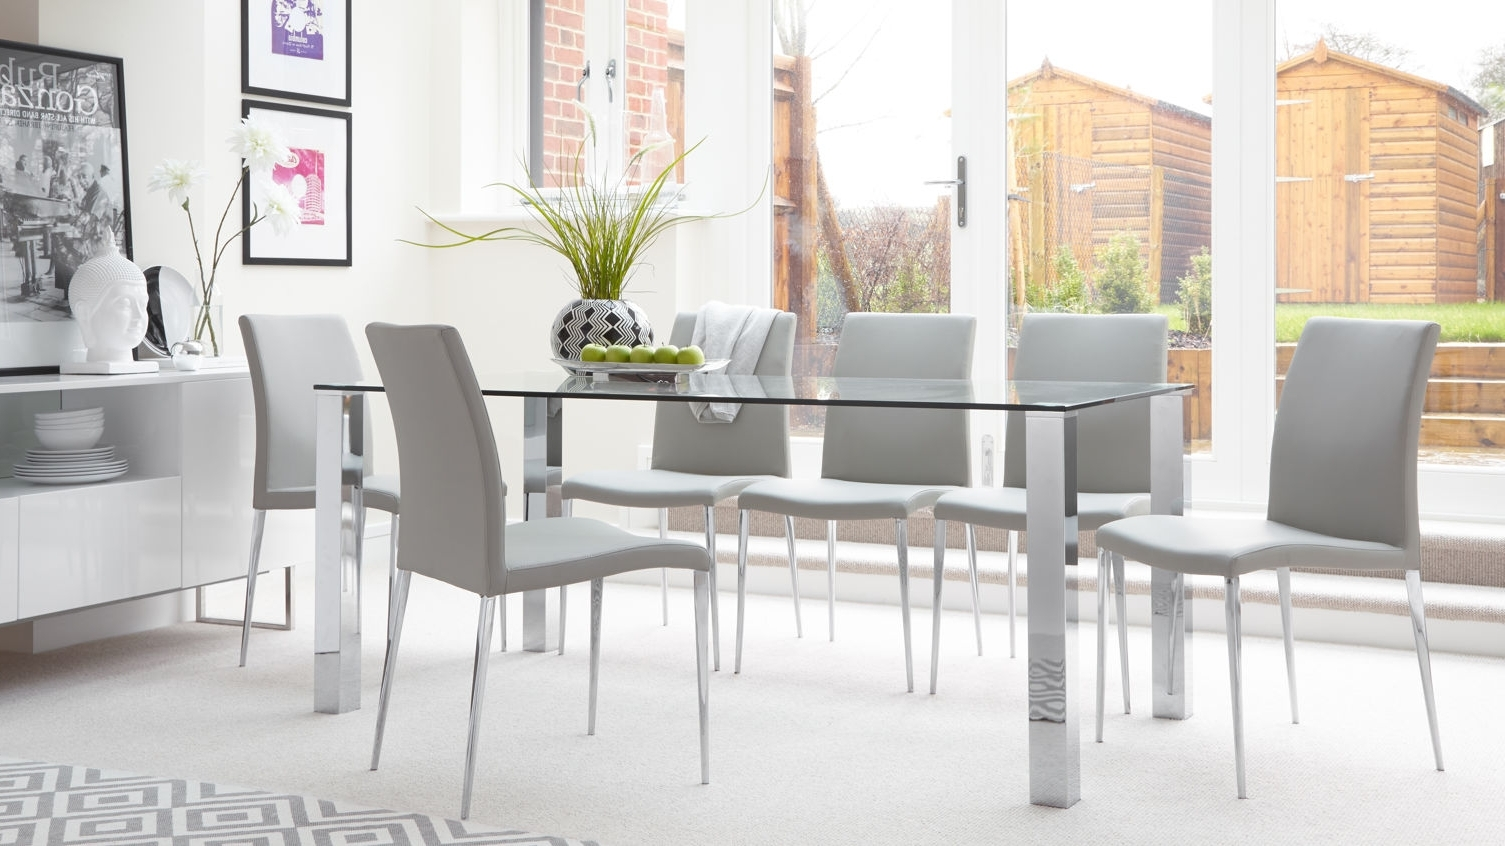 Widely Used Extending Glass Dining Tables And 8 Chairs Pertaining To Glass Top Dining Table With 8 Chairs – Glass Decorating Ideas (View 4 of 25)